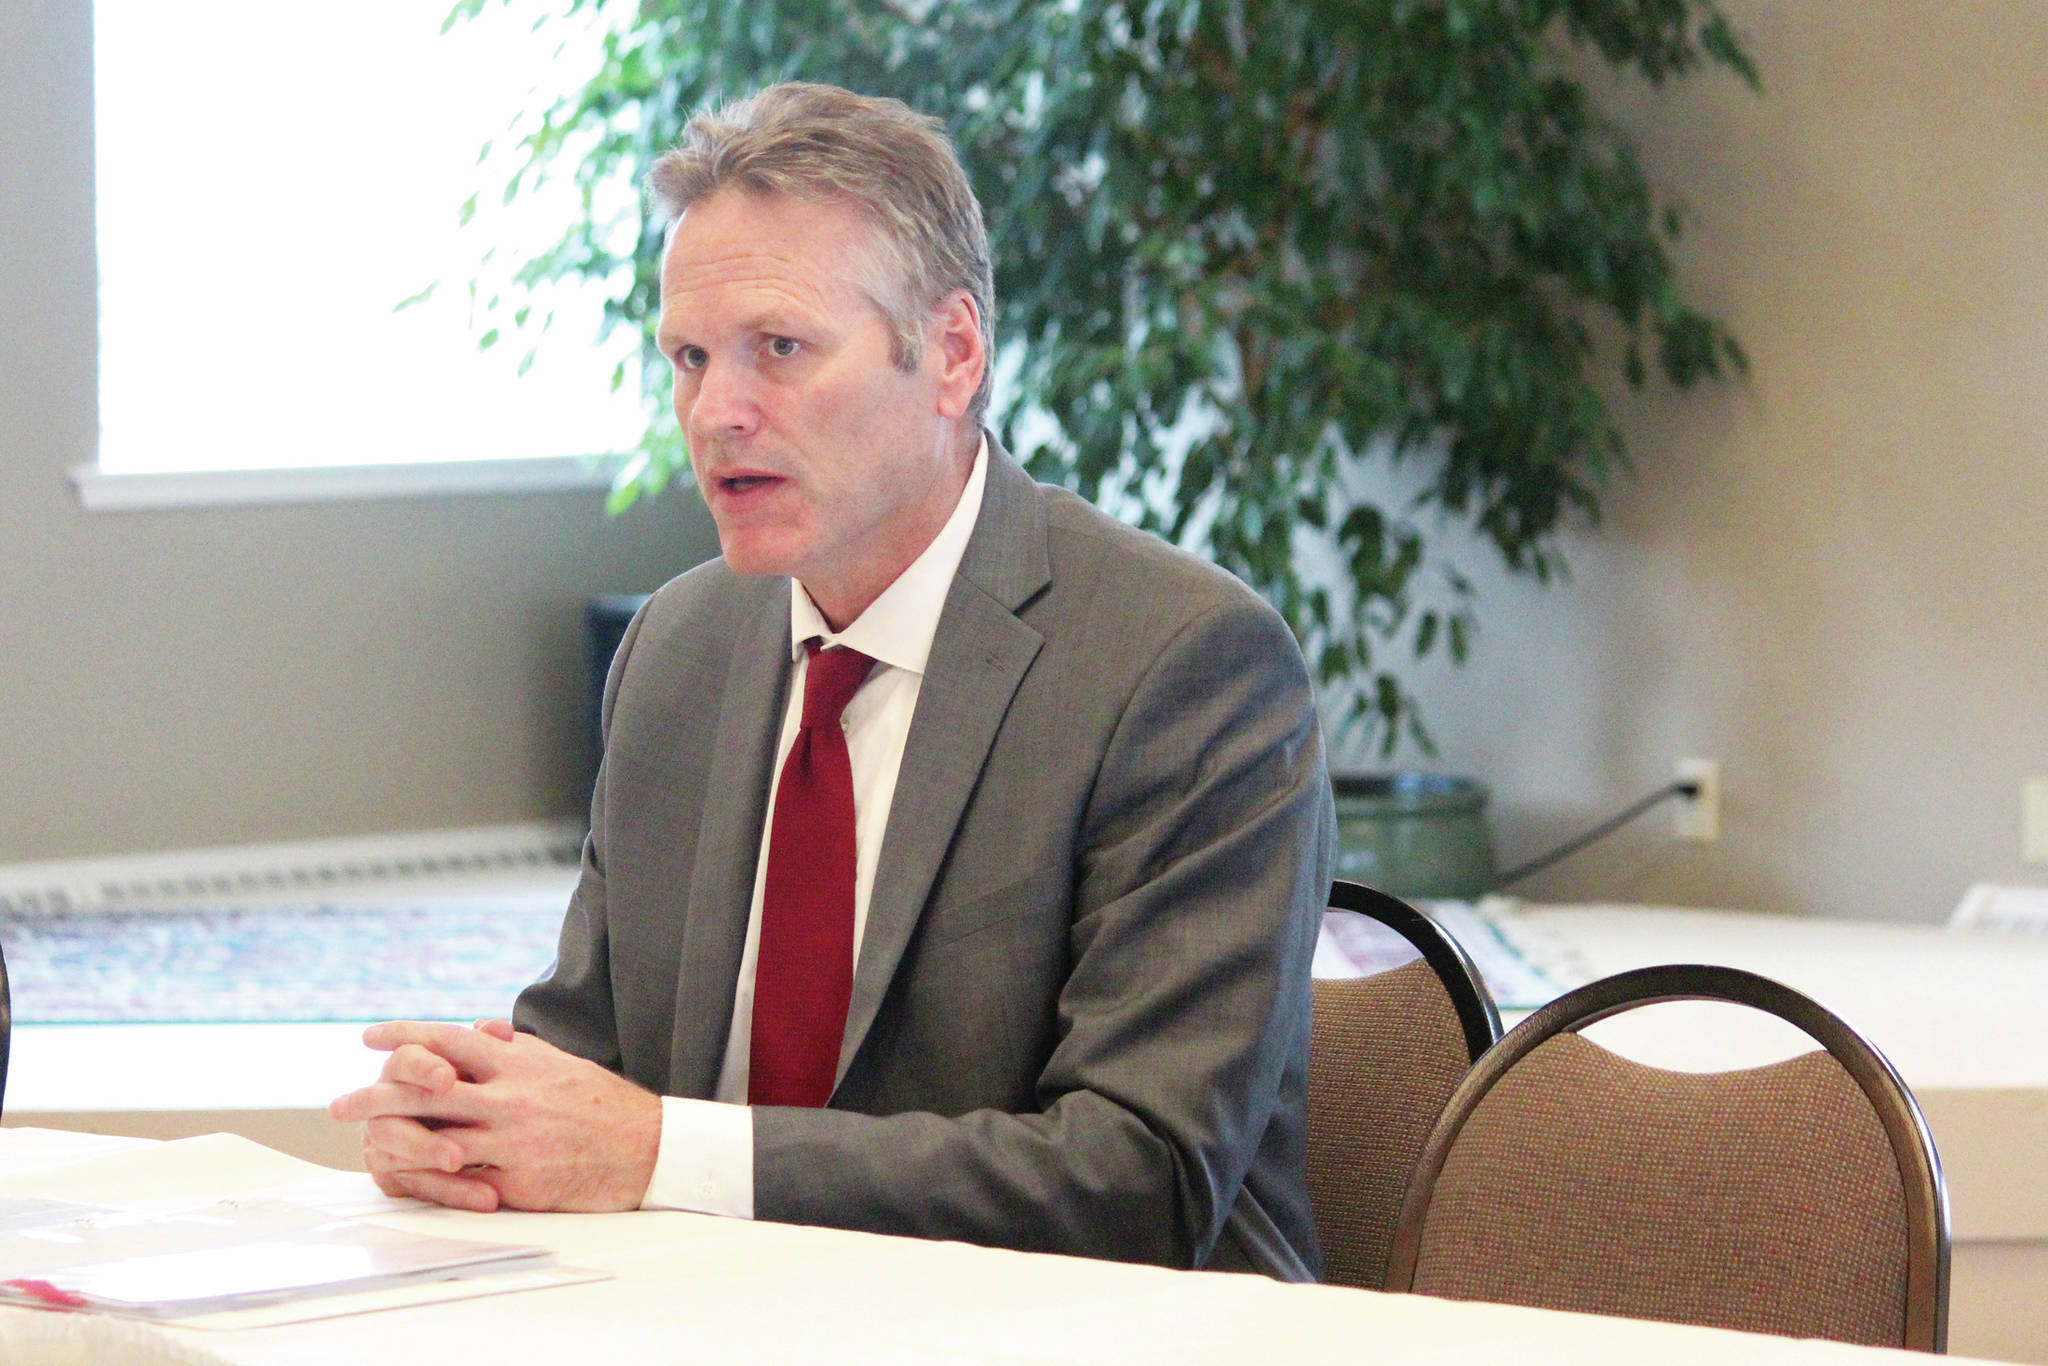 Gov. Mike Dunleavy speaks to attendees of a conference held by the Alaska State Home Building Association and the Kenai Peninsula Home Builders Association on Thursday, Oct. 17, 2019 at Land's End Resort in Homer, Alaska. Dunleavy came to brief conference participants on the statewide economy. (Photo by Megan Pacer/Homer News)